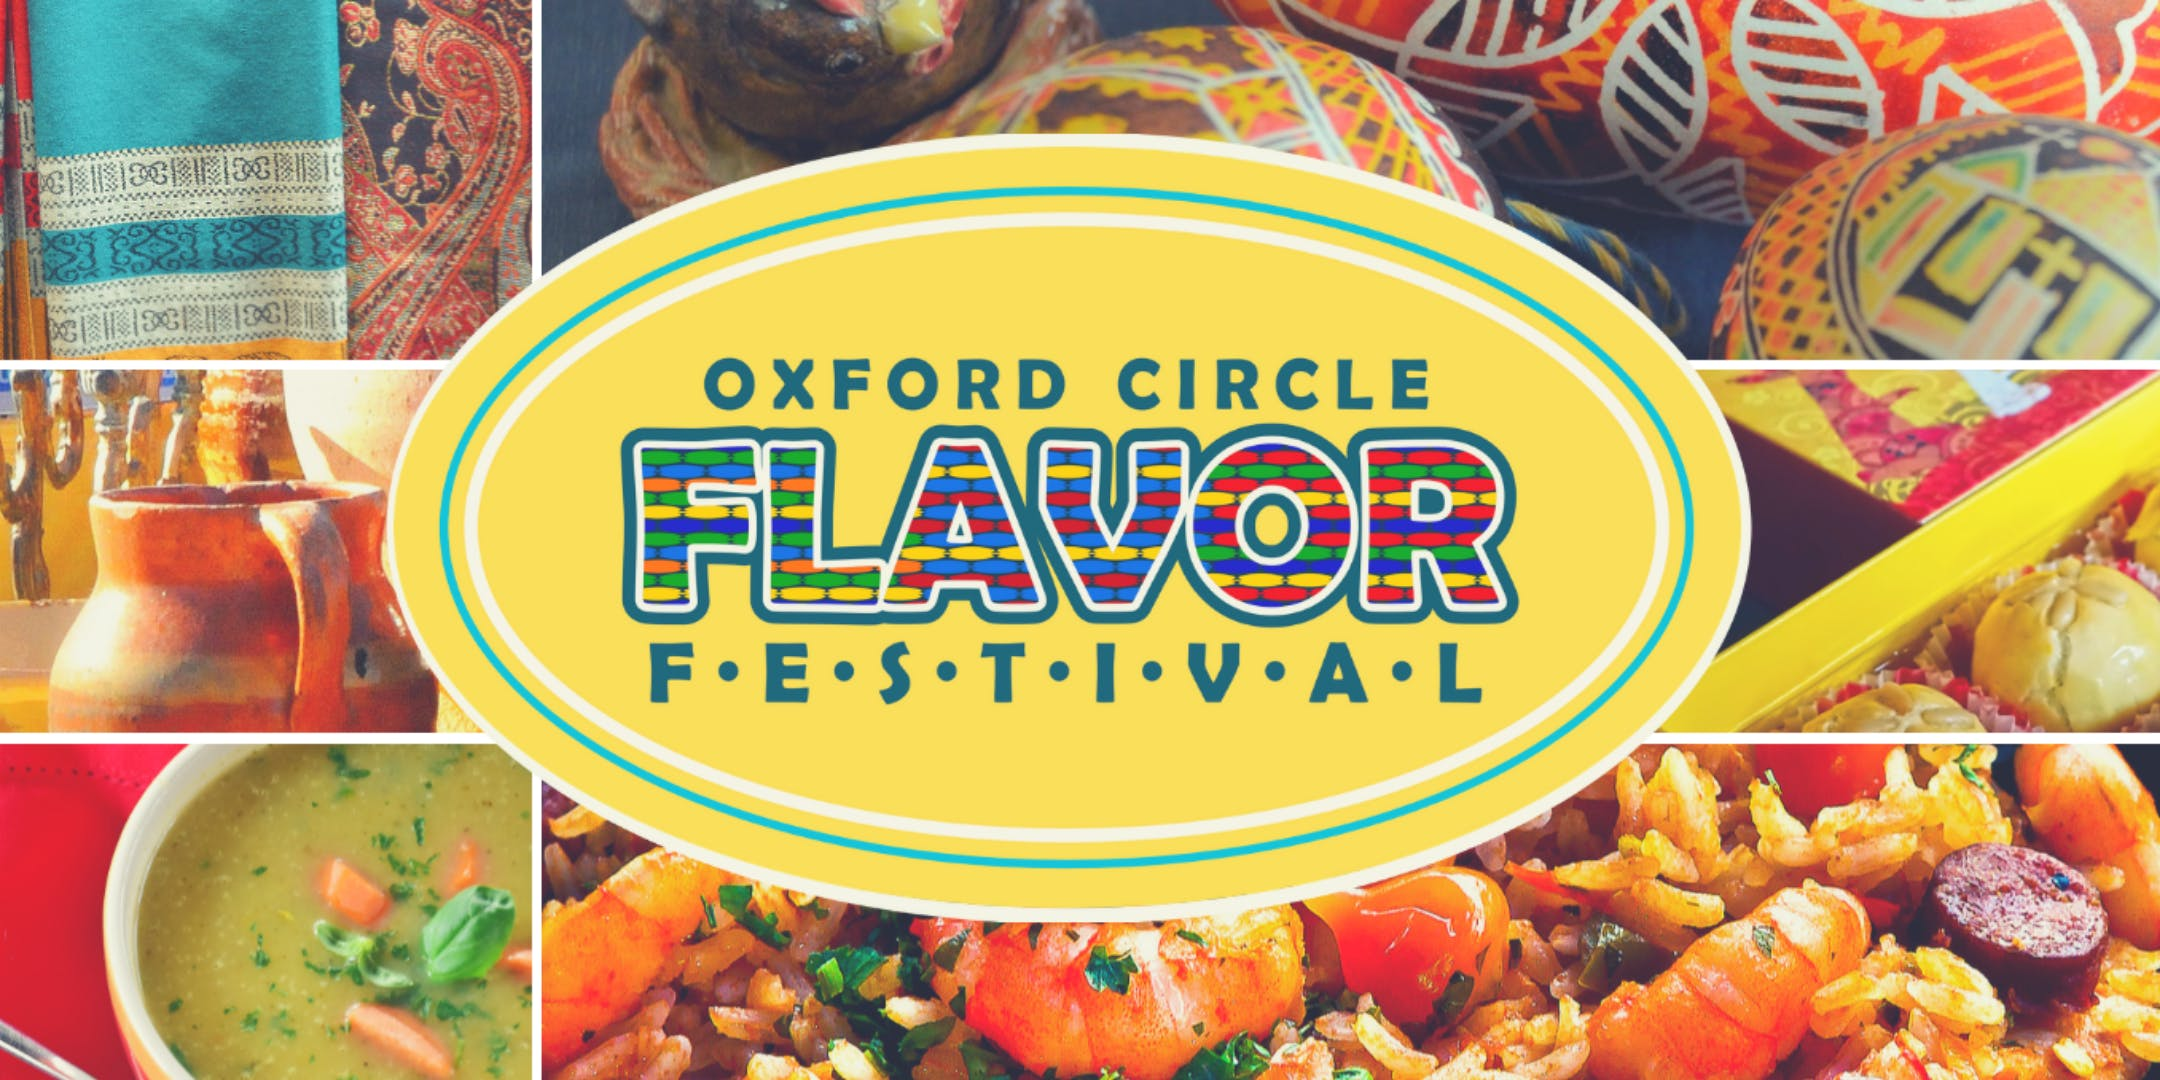 The Oxford Circle Flavor Festival